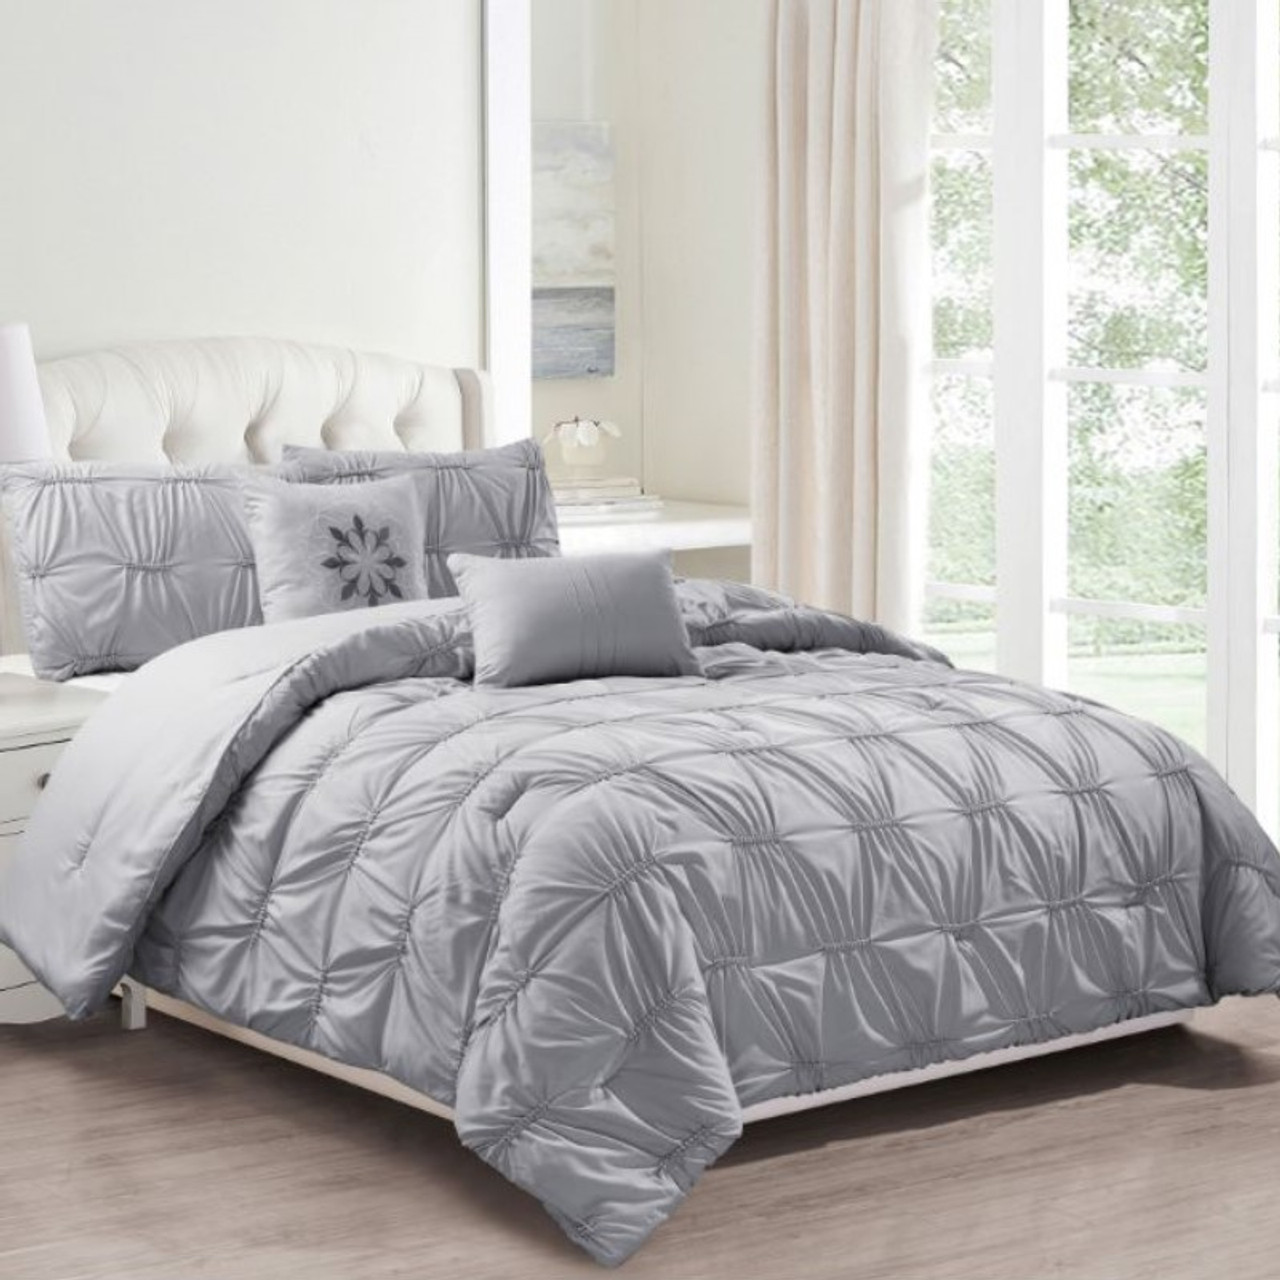 Solid Ruching Pintucked Oversized Comforter Set for a Queen Bed - 8 Piece